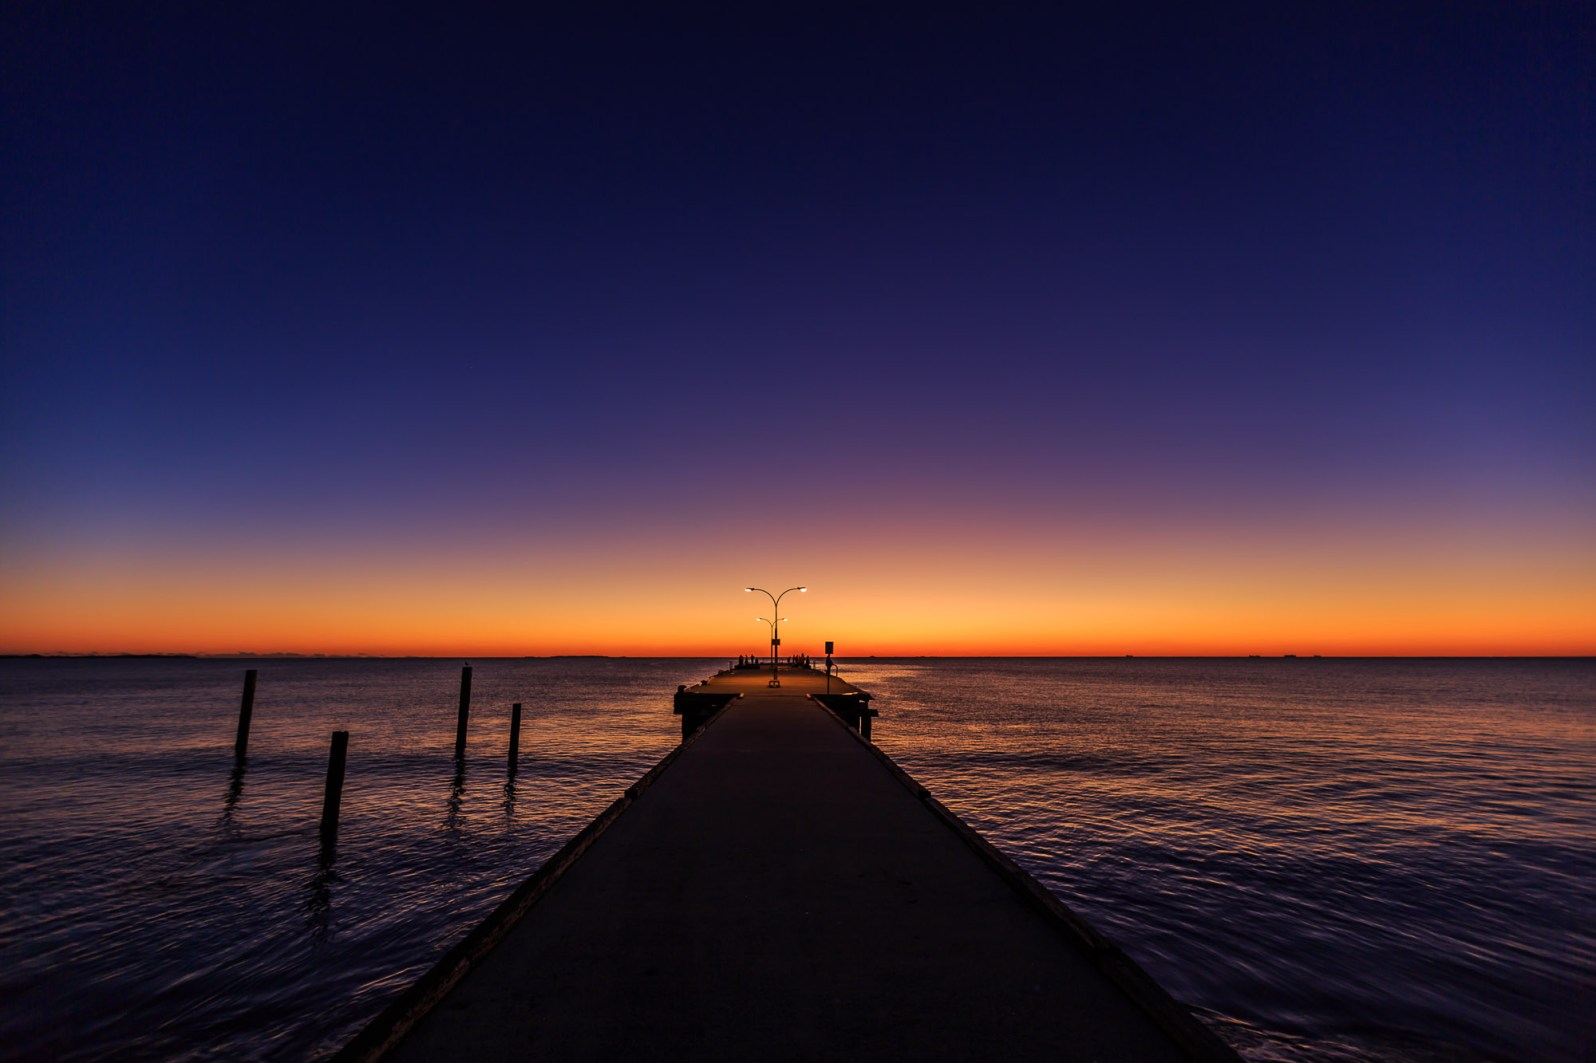 The sun sets during a clear winter day at Woodman Point Jetty, Western Australia.